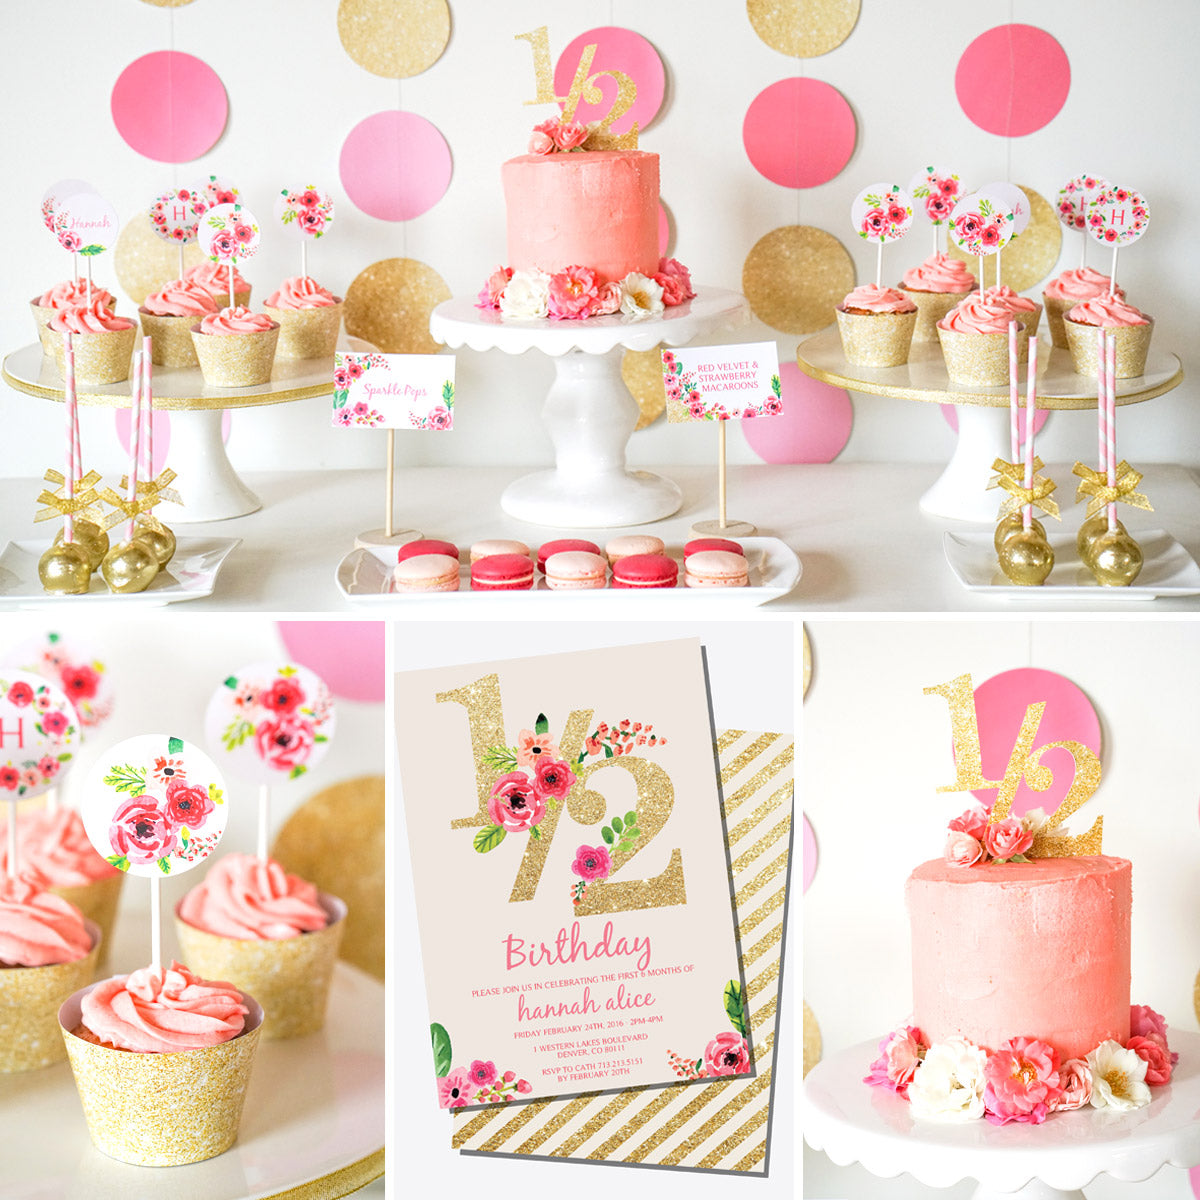 Hannah S Half Year Birthday Party In Gold Glitter And Pink